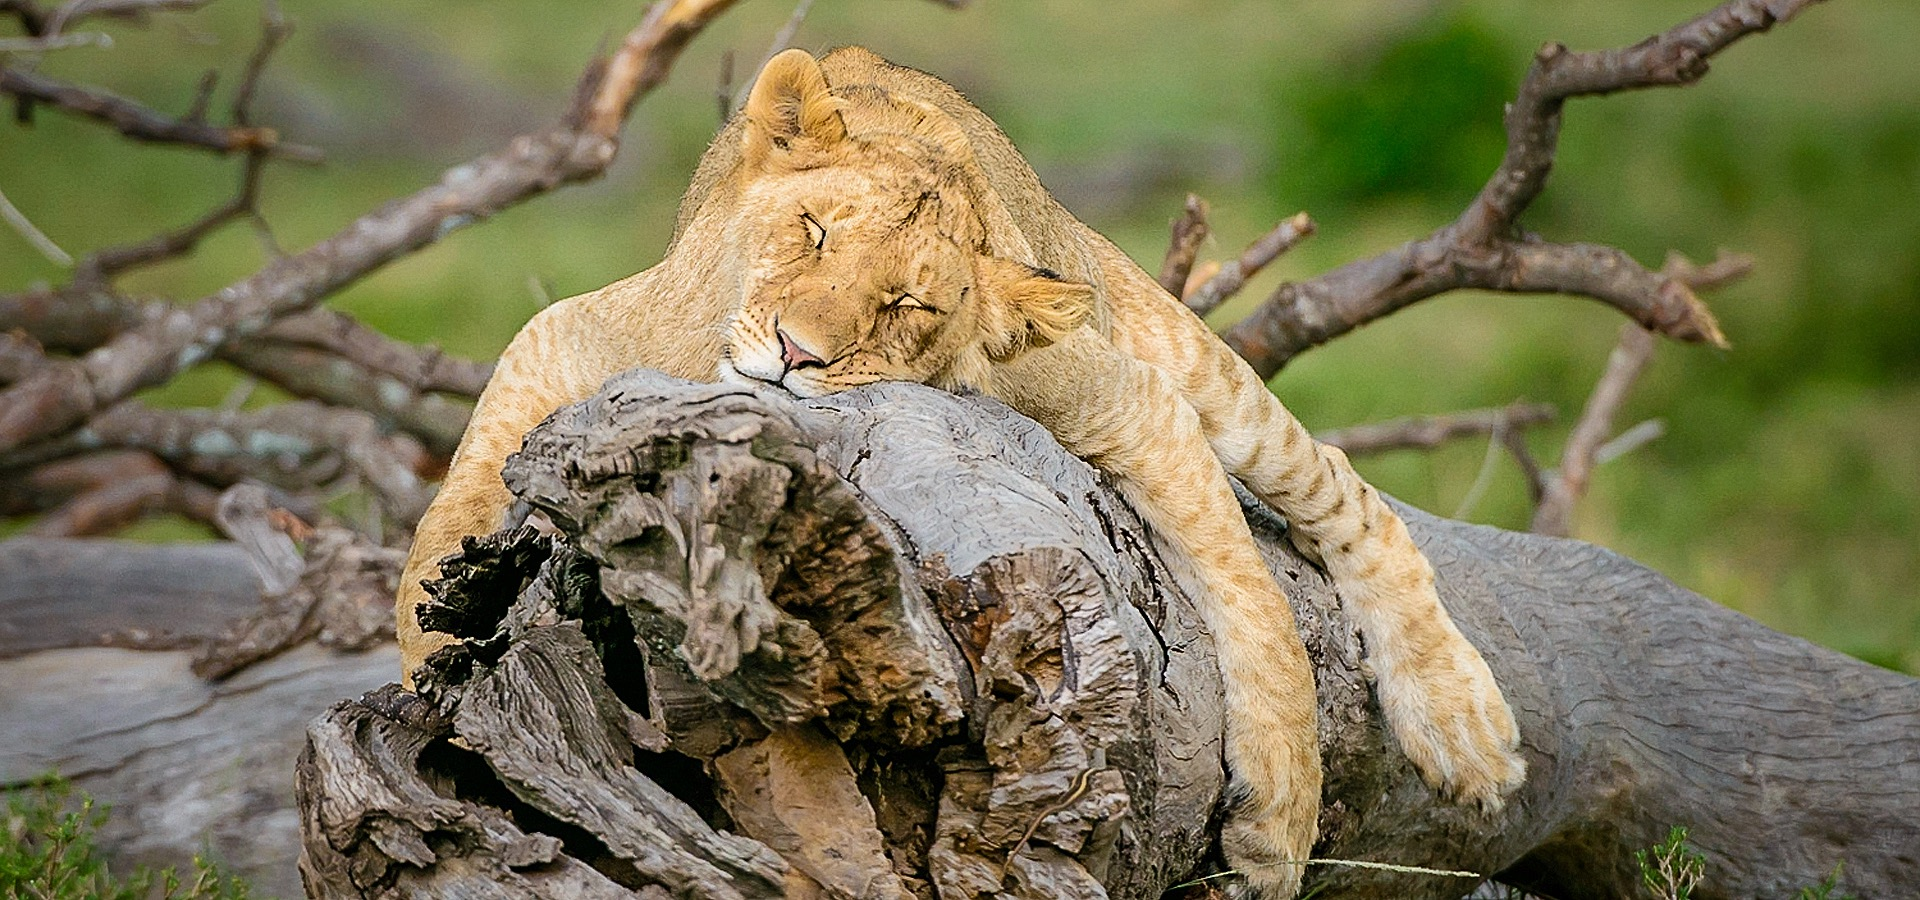 Sleeping young Lion in the Masai Mara.